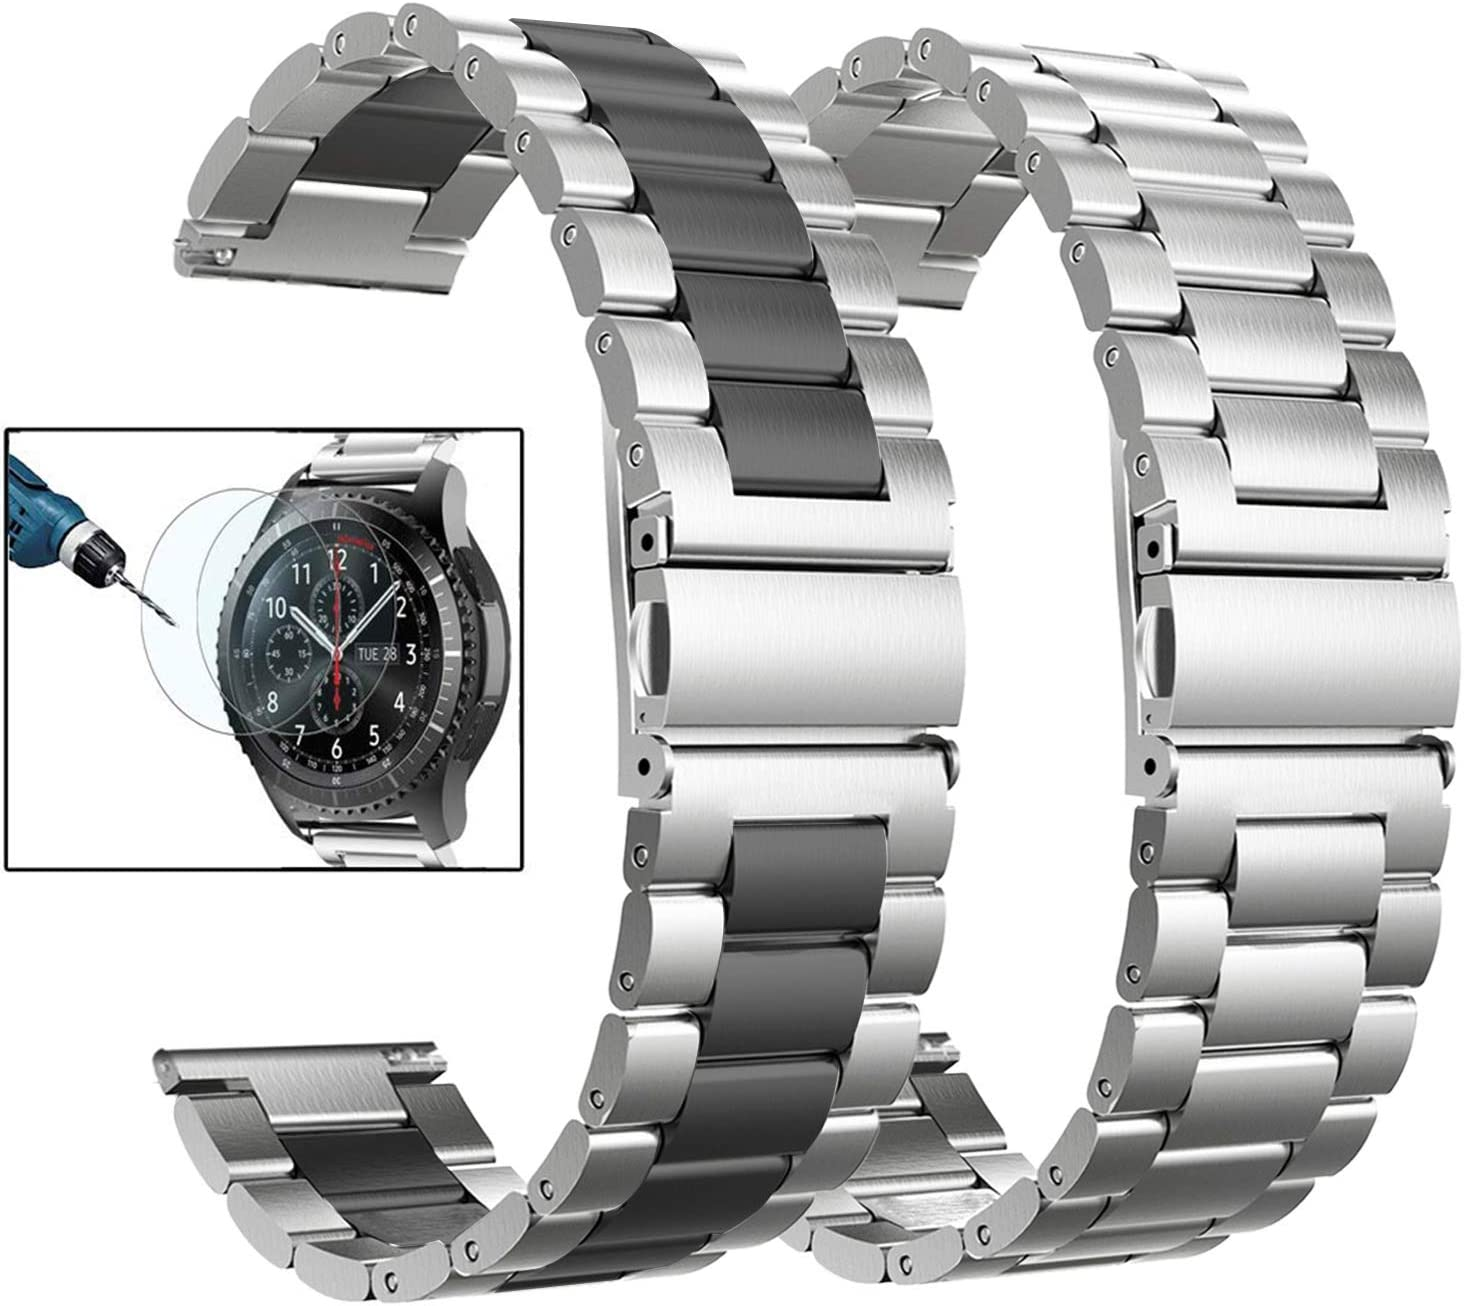 Valkit Compatible Gear S3 Frontier/Galaxy Watch 3 45mm Bands,22mm Stainless Steel Solid Wrist Band Metal Bracelet +Screen Protector for Gear S3 Frontier/Classic/Galaxy Watch 46mm, Sliver/Black+Sliver